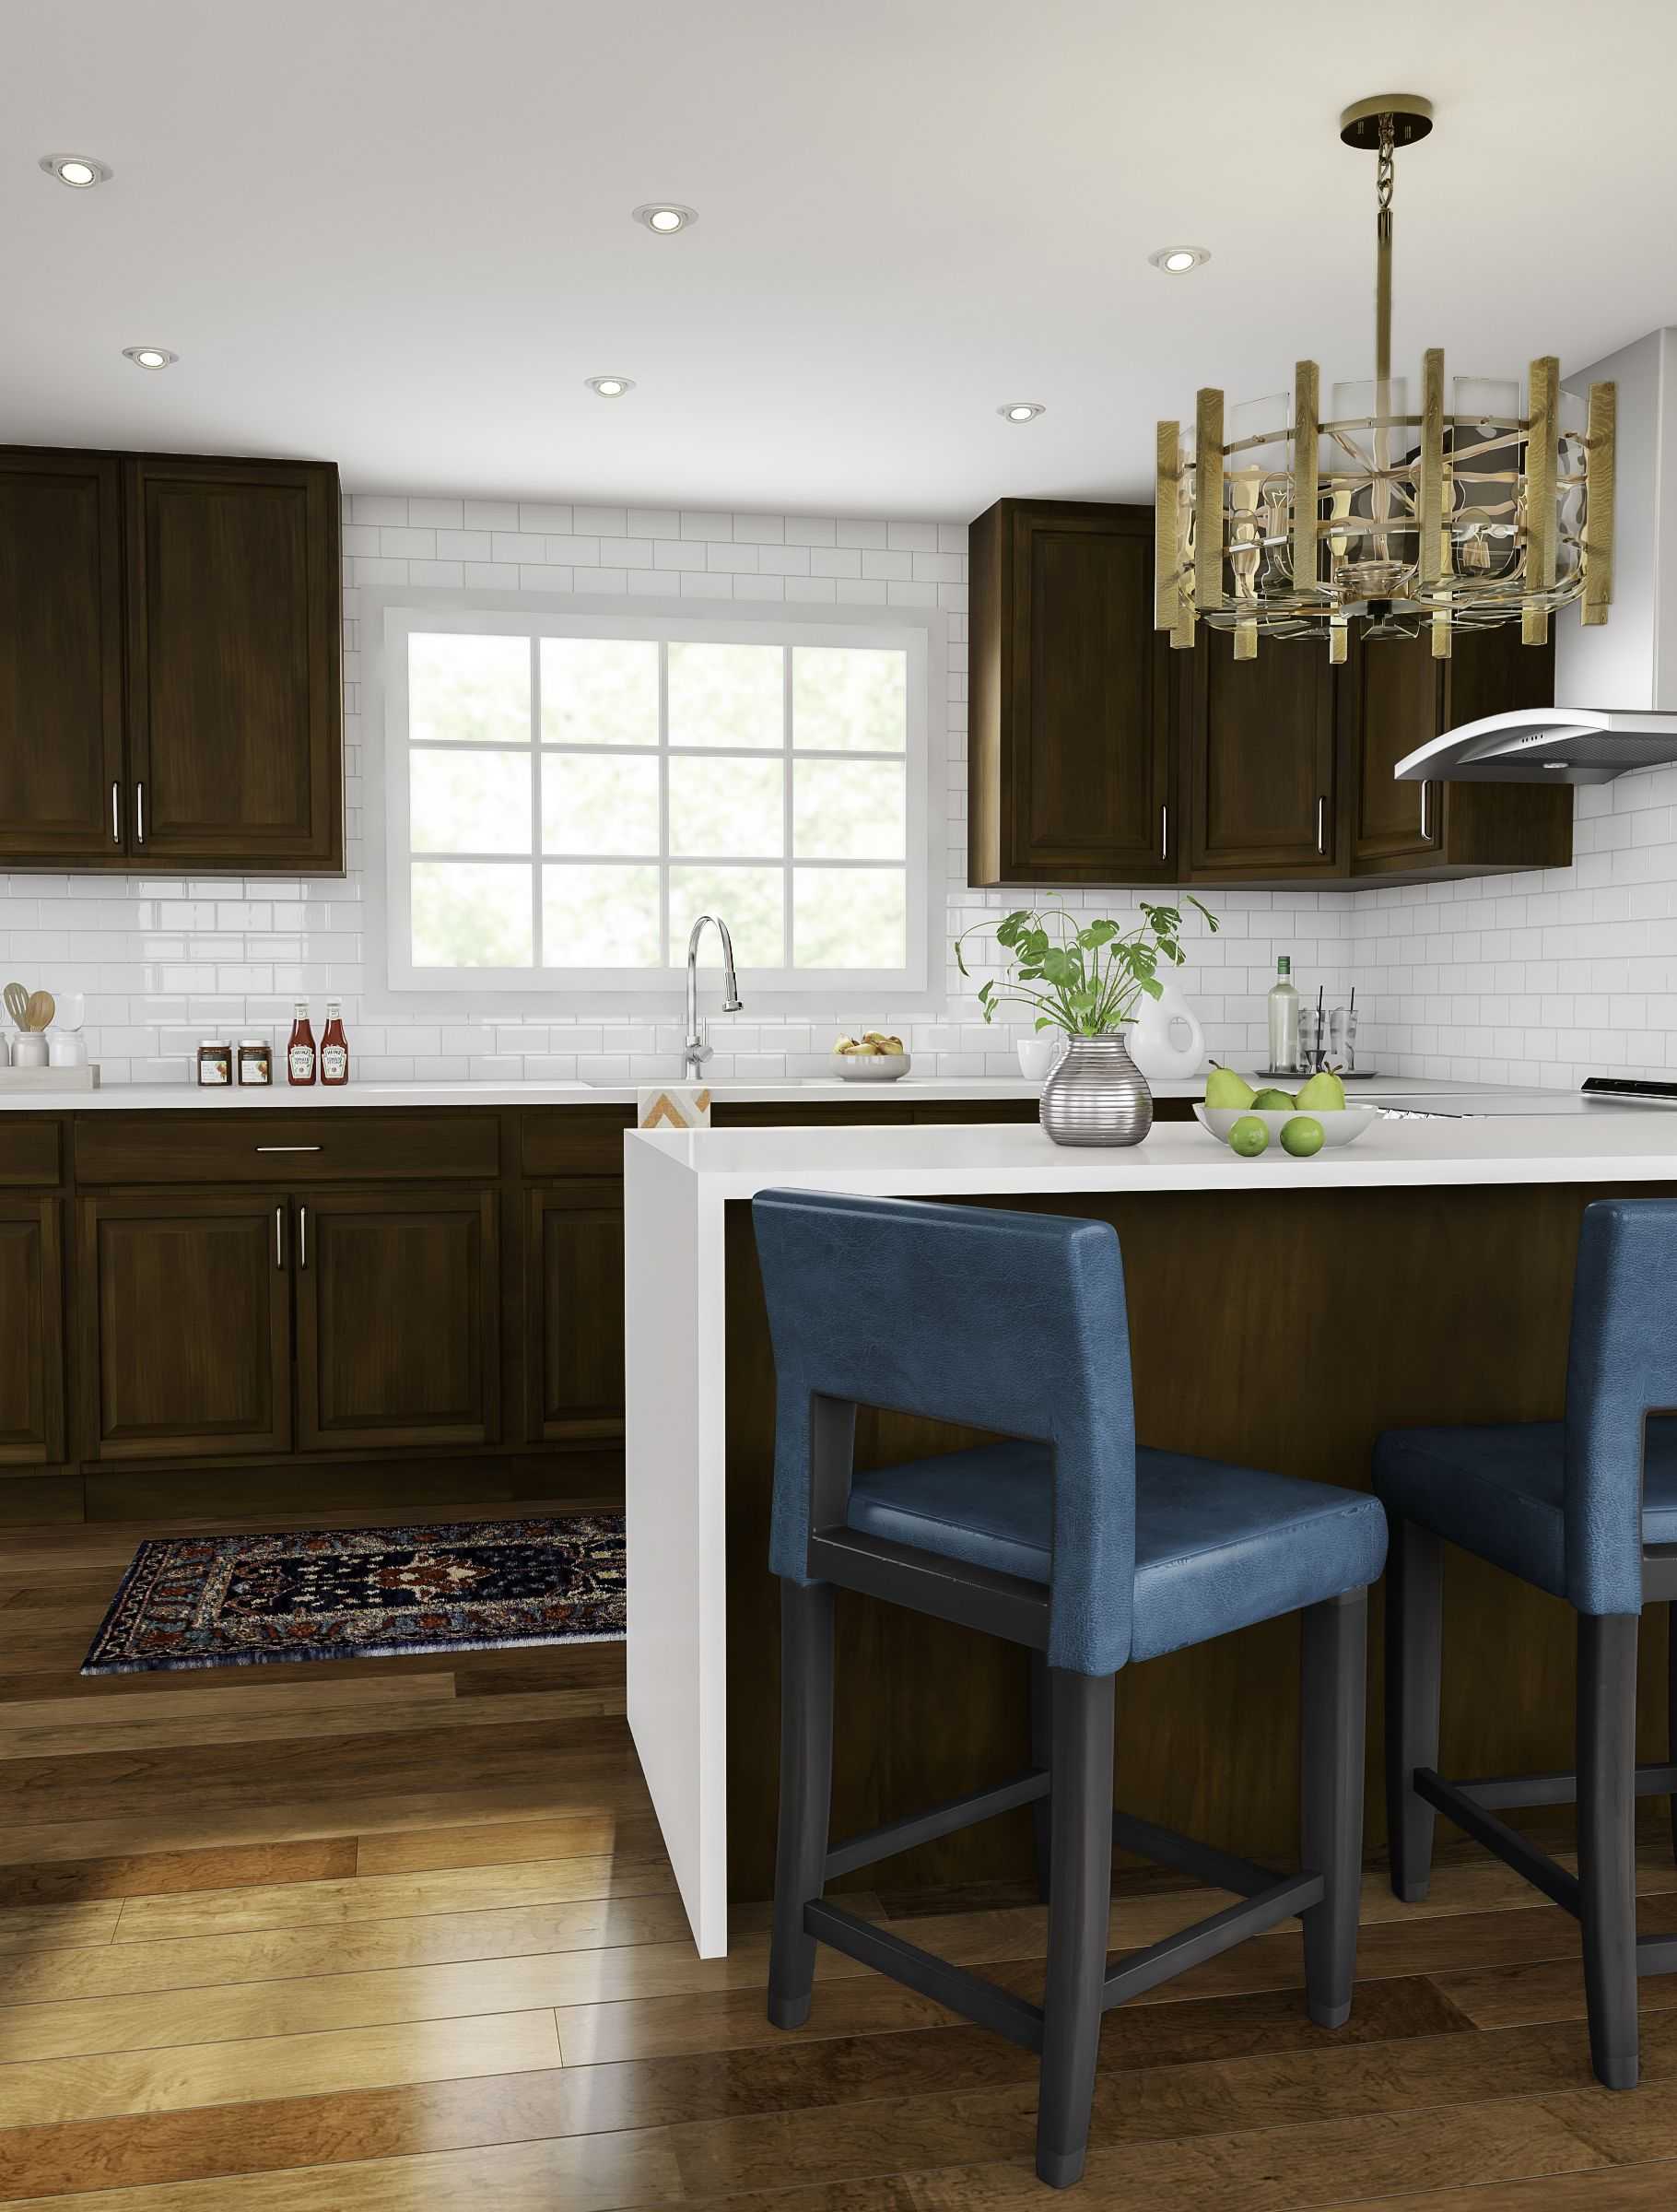 A Pop Of Color Does Wonders In Your Kitchen Upgrade Yours With Lots Of Rich Dark Wood Fo Interior Design Kitchen Kitchen Design Decor Kitchen Cabinet Remodel